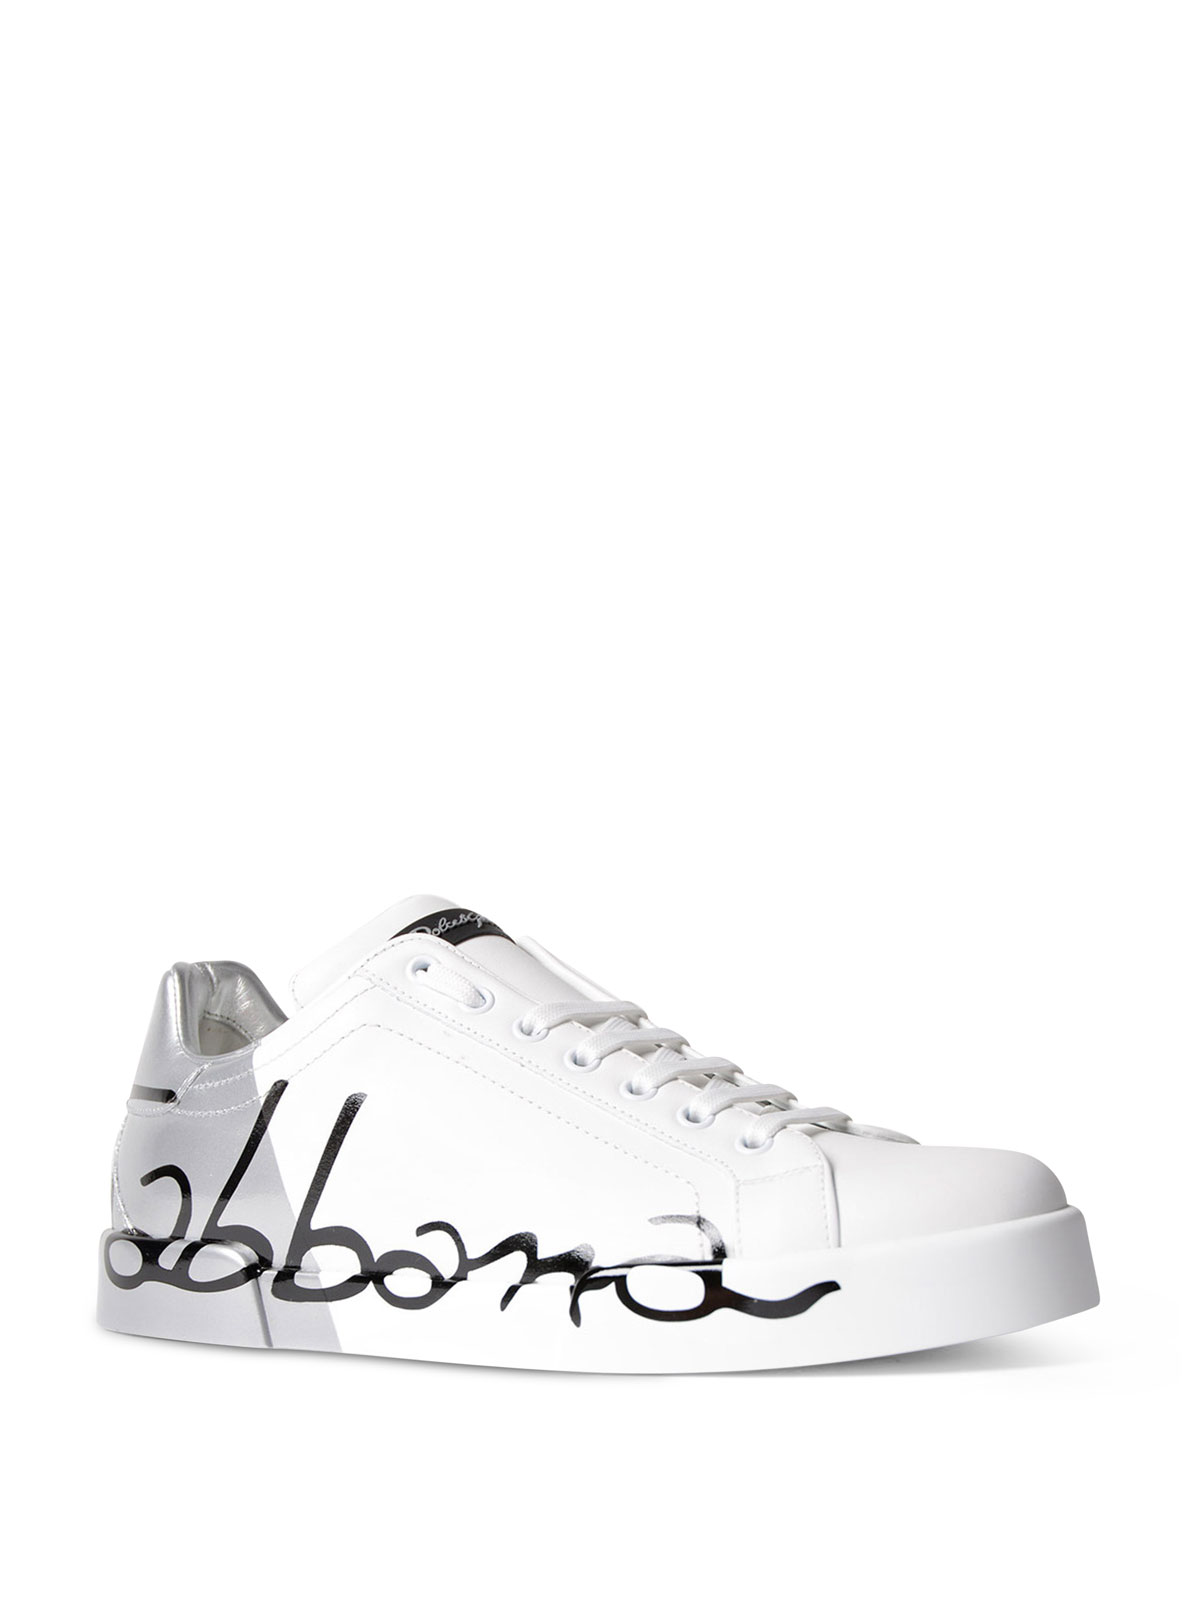 Free Shipping Websites Black and Silver Portofino Logo Sneakers Dolce & Gabbana Cheap Price In China Buy Cheap Low Price Buy Cheap 2018 8dy92y